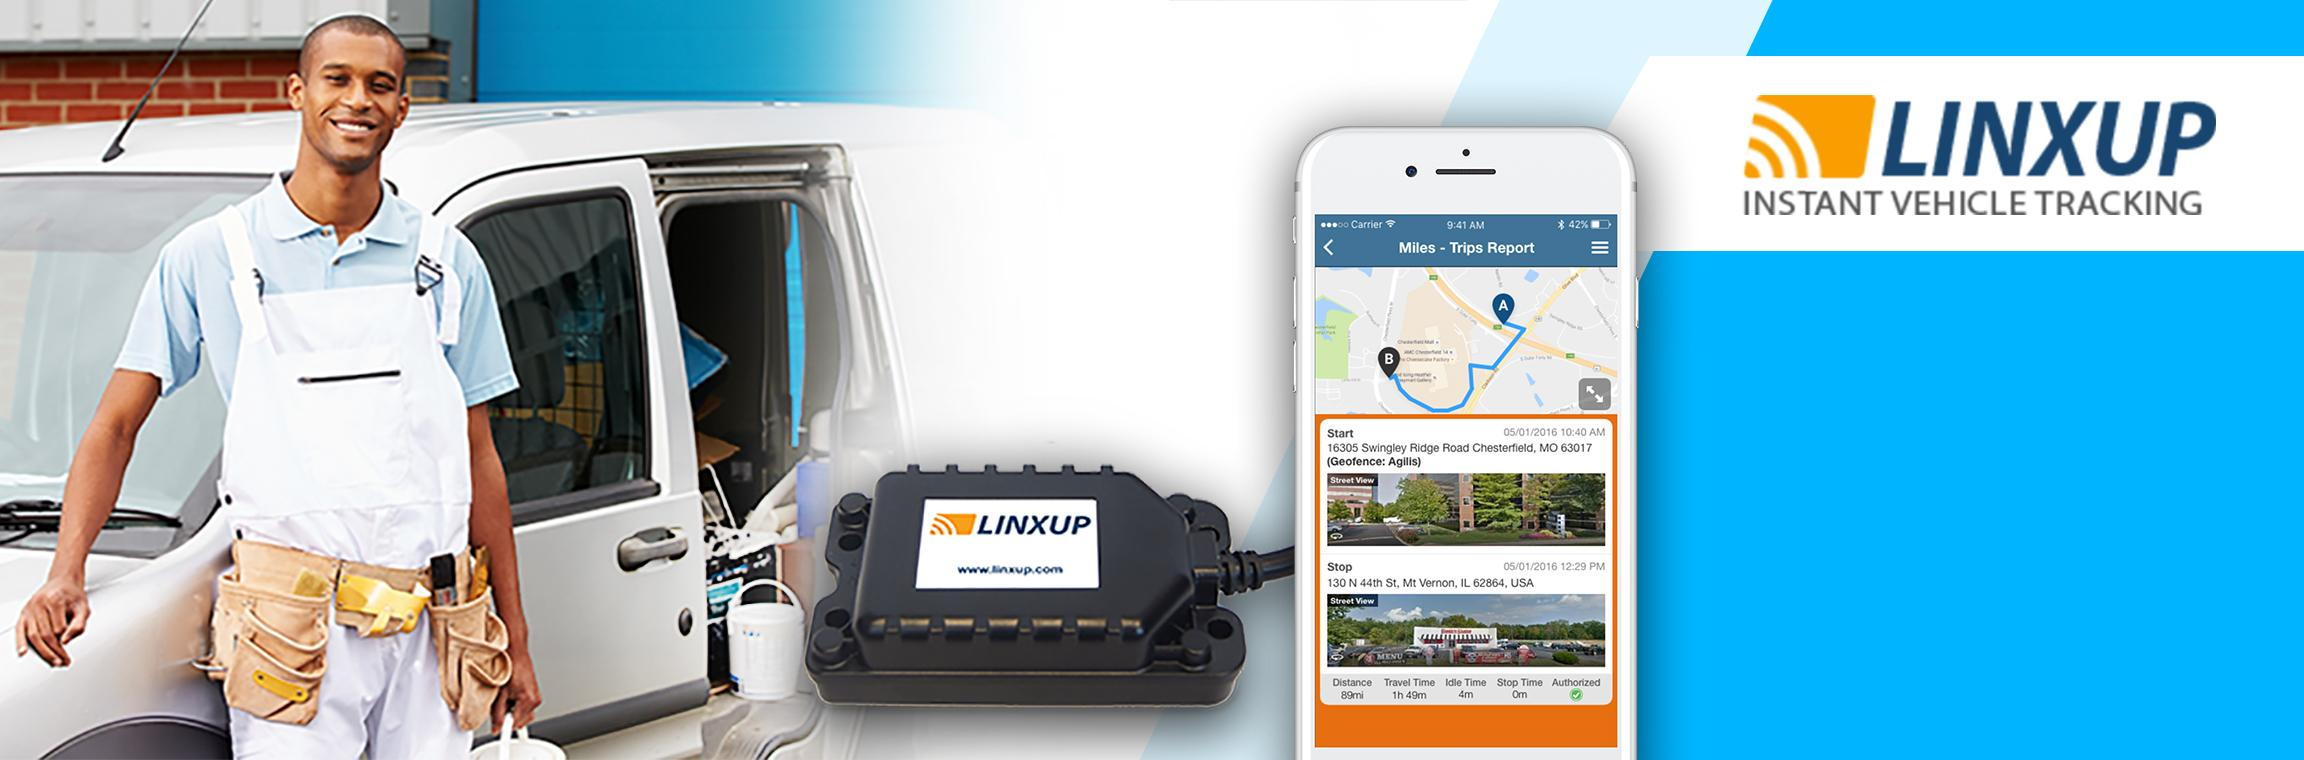 4823e6c7 a349 4de5 8ff9 c3b7d6204b9d._SR970300_ amazon com linxup laaa31 gps tracker device, rechargeable 3 month linxup wiring diagram at love-stories.co